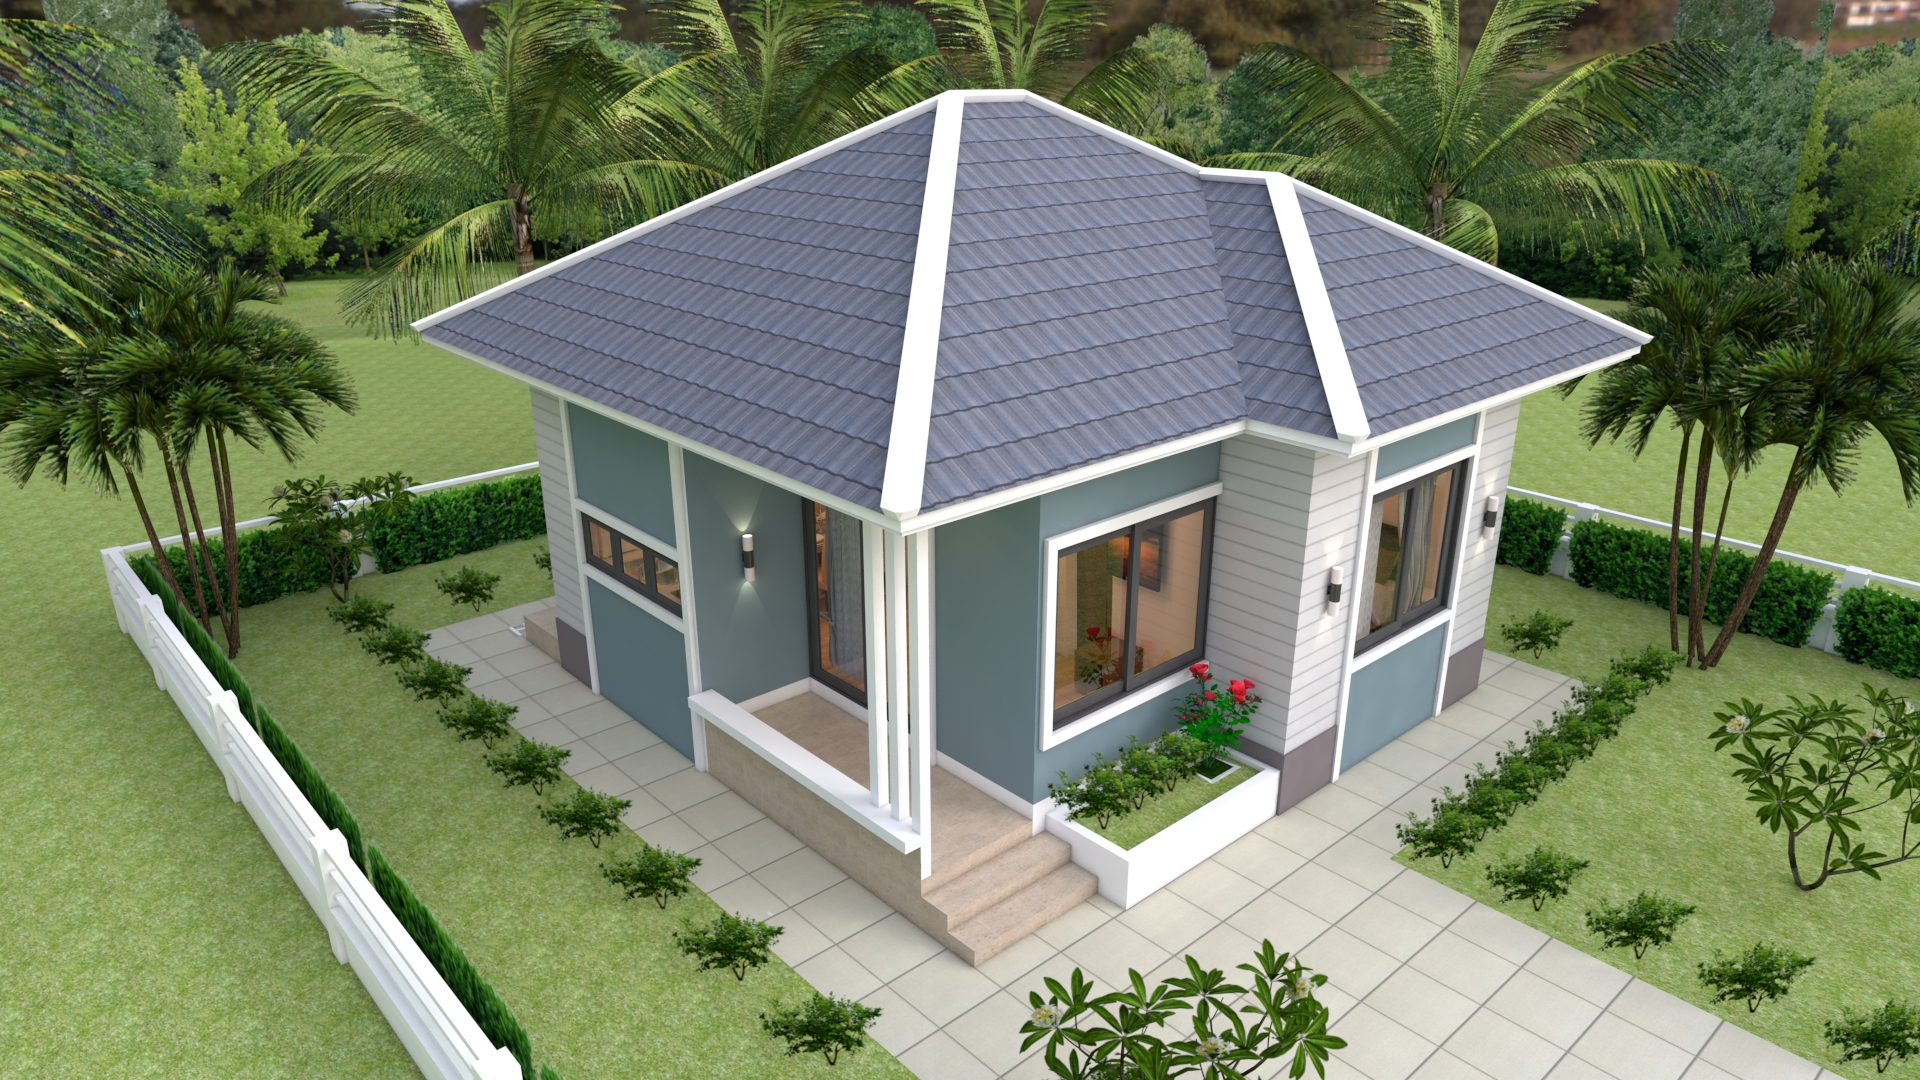 The Small Home 7x7 Meter 24x24 Feet 2 Beds 4